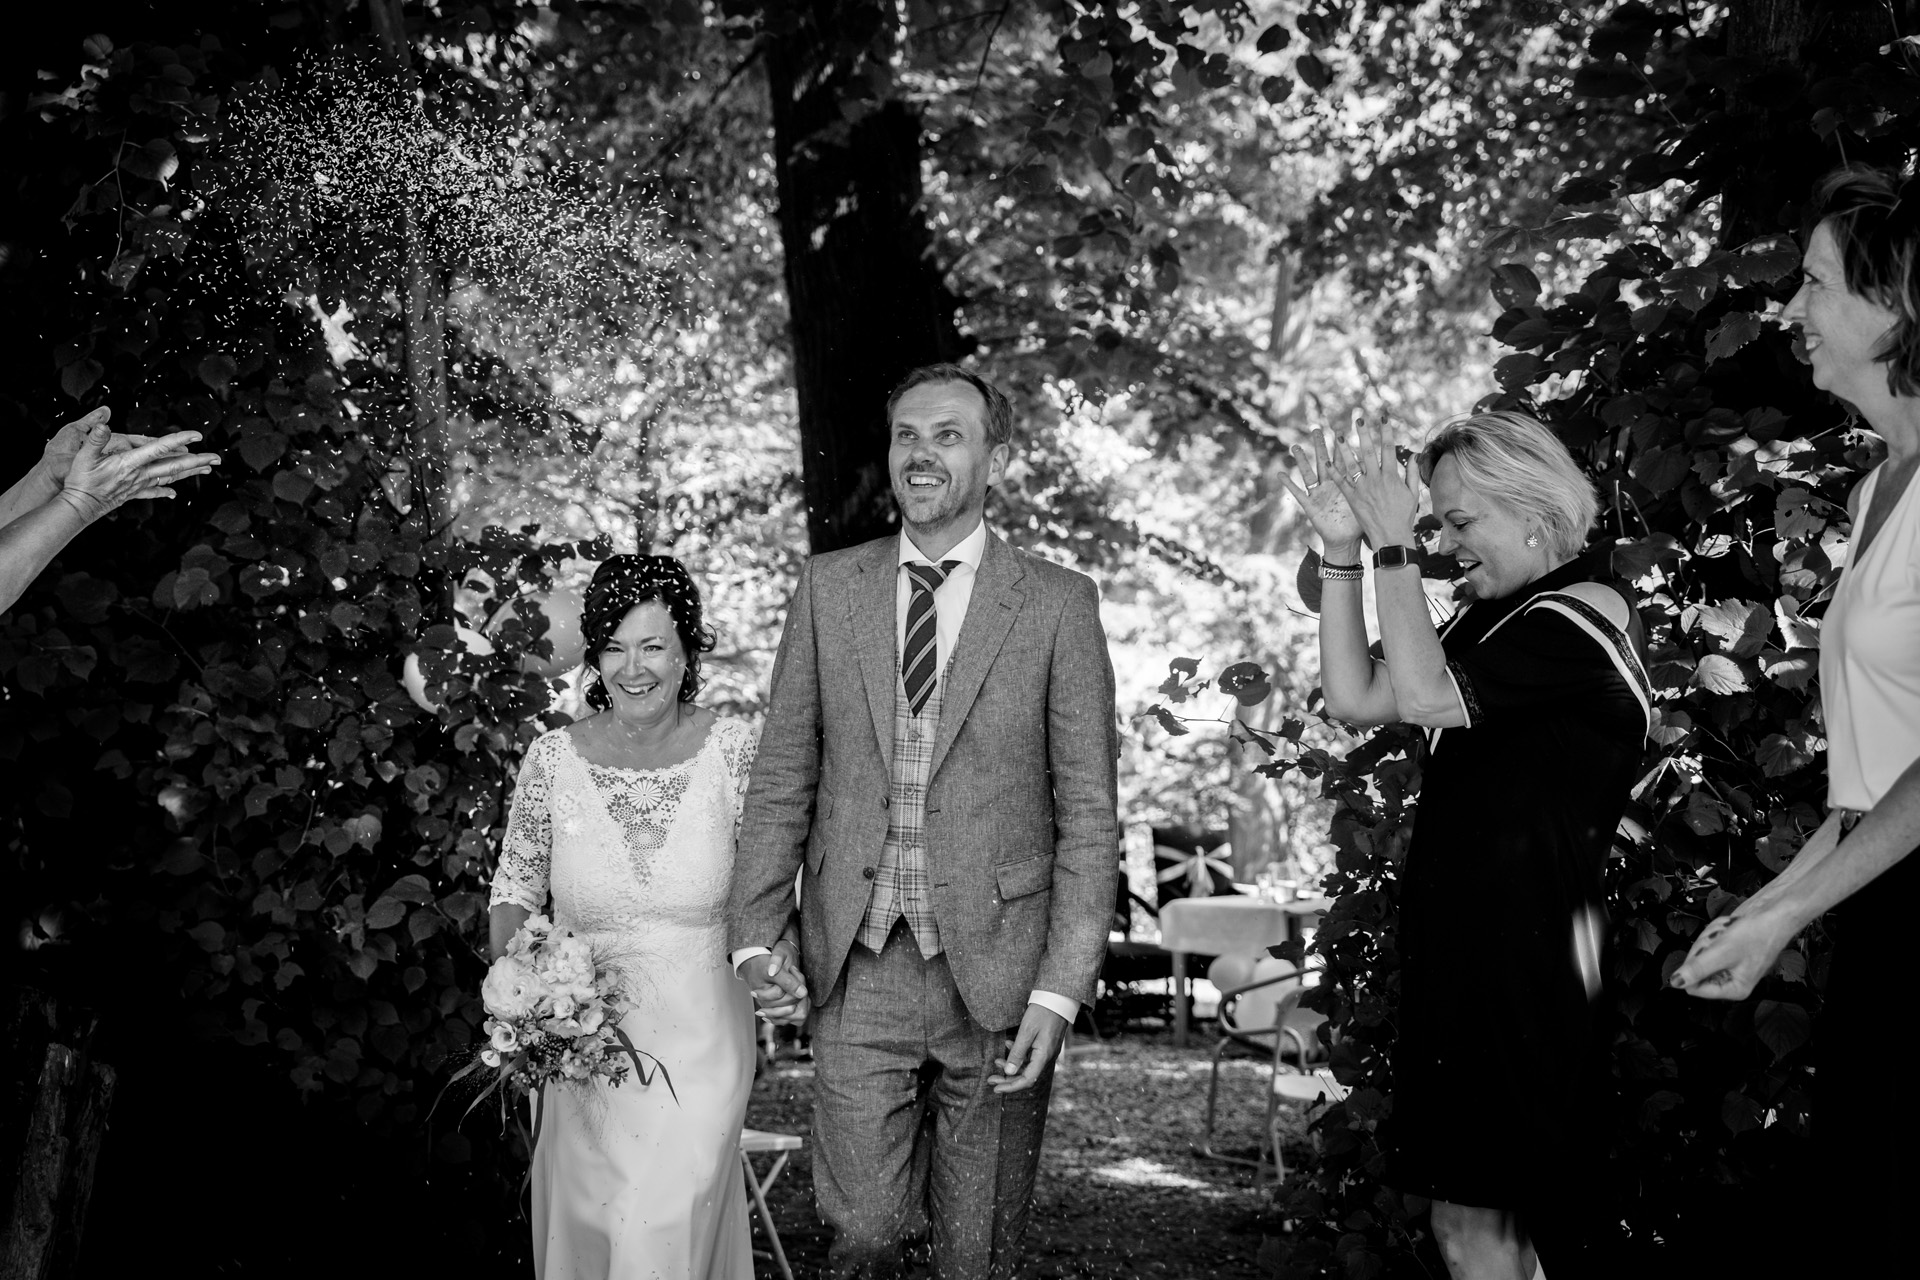 Outdoor Elopement Ceremony Image from the NL | Both the bride and groom are delighted in their first moments as husband and wife